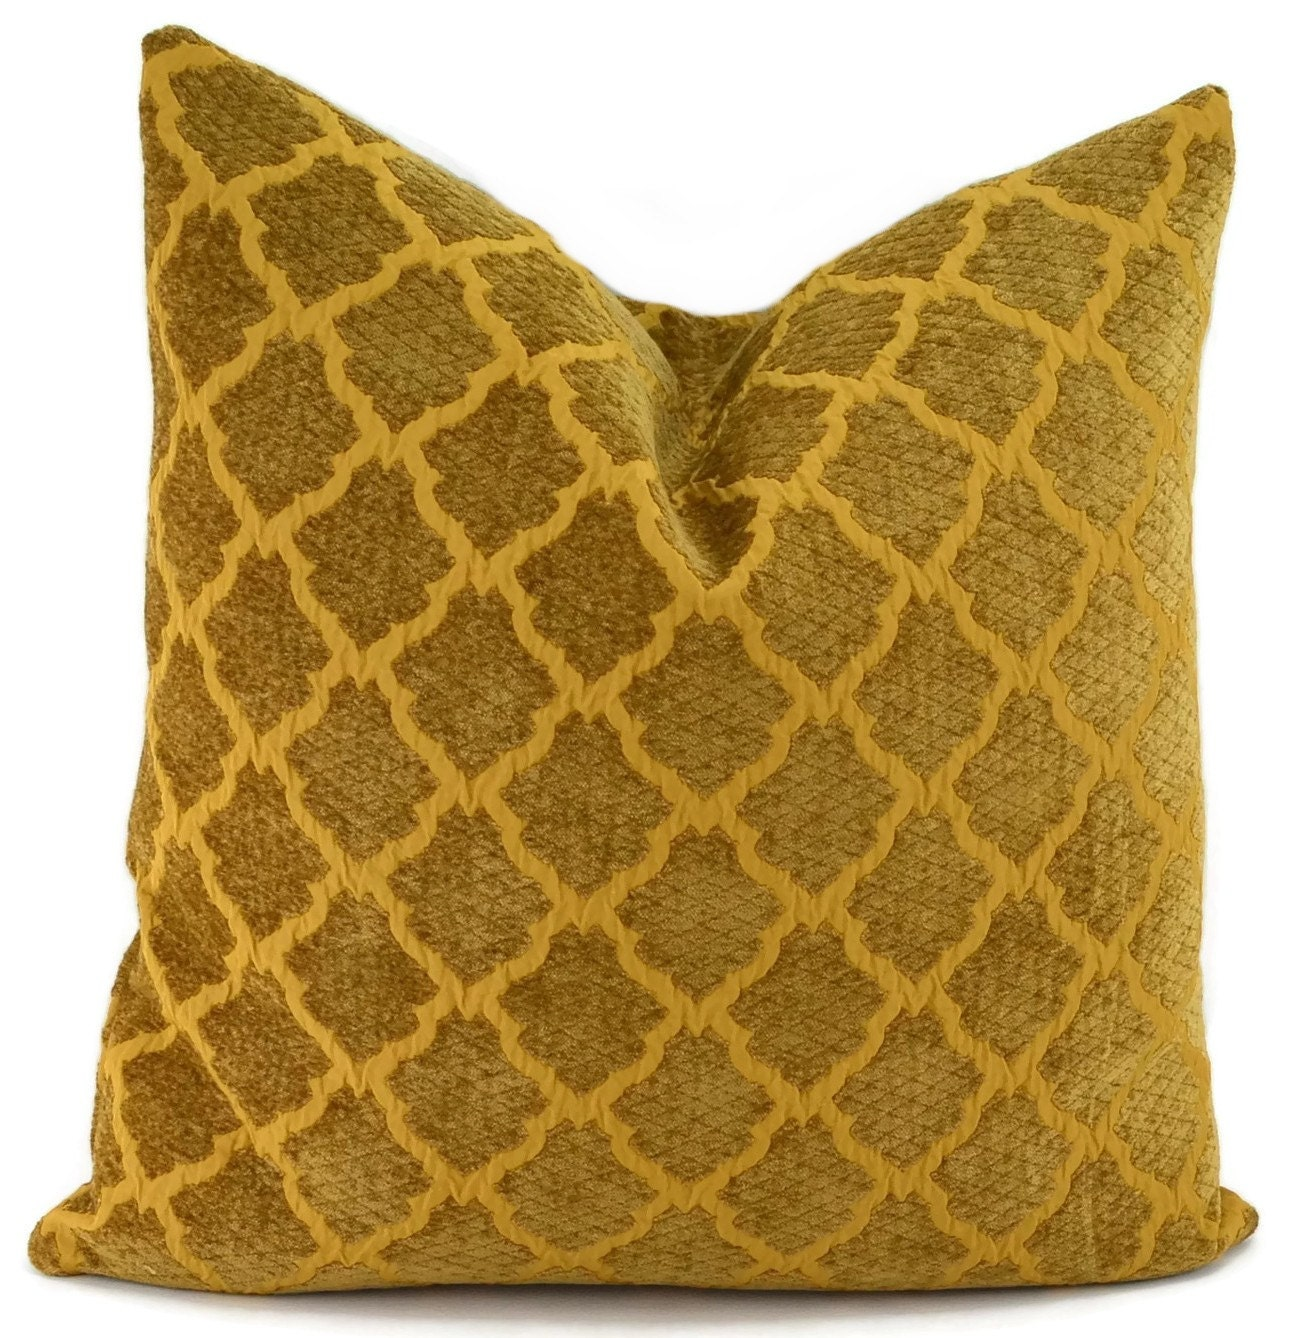 Chenille Throw Pillow Covers : Sale Gold Chenille Throw Pillow Cover 18x18 Gold Moroccan